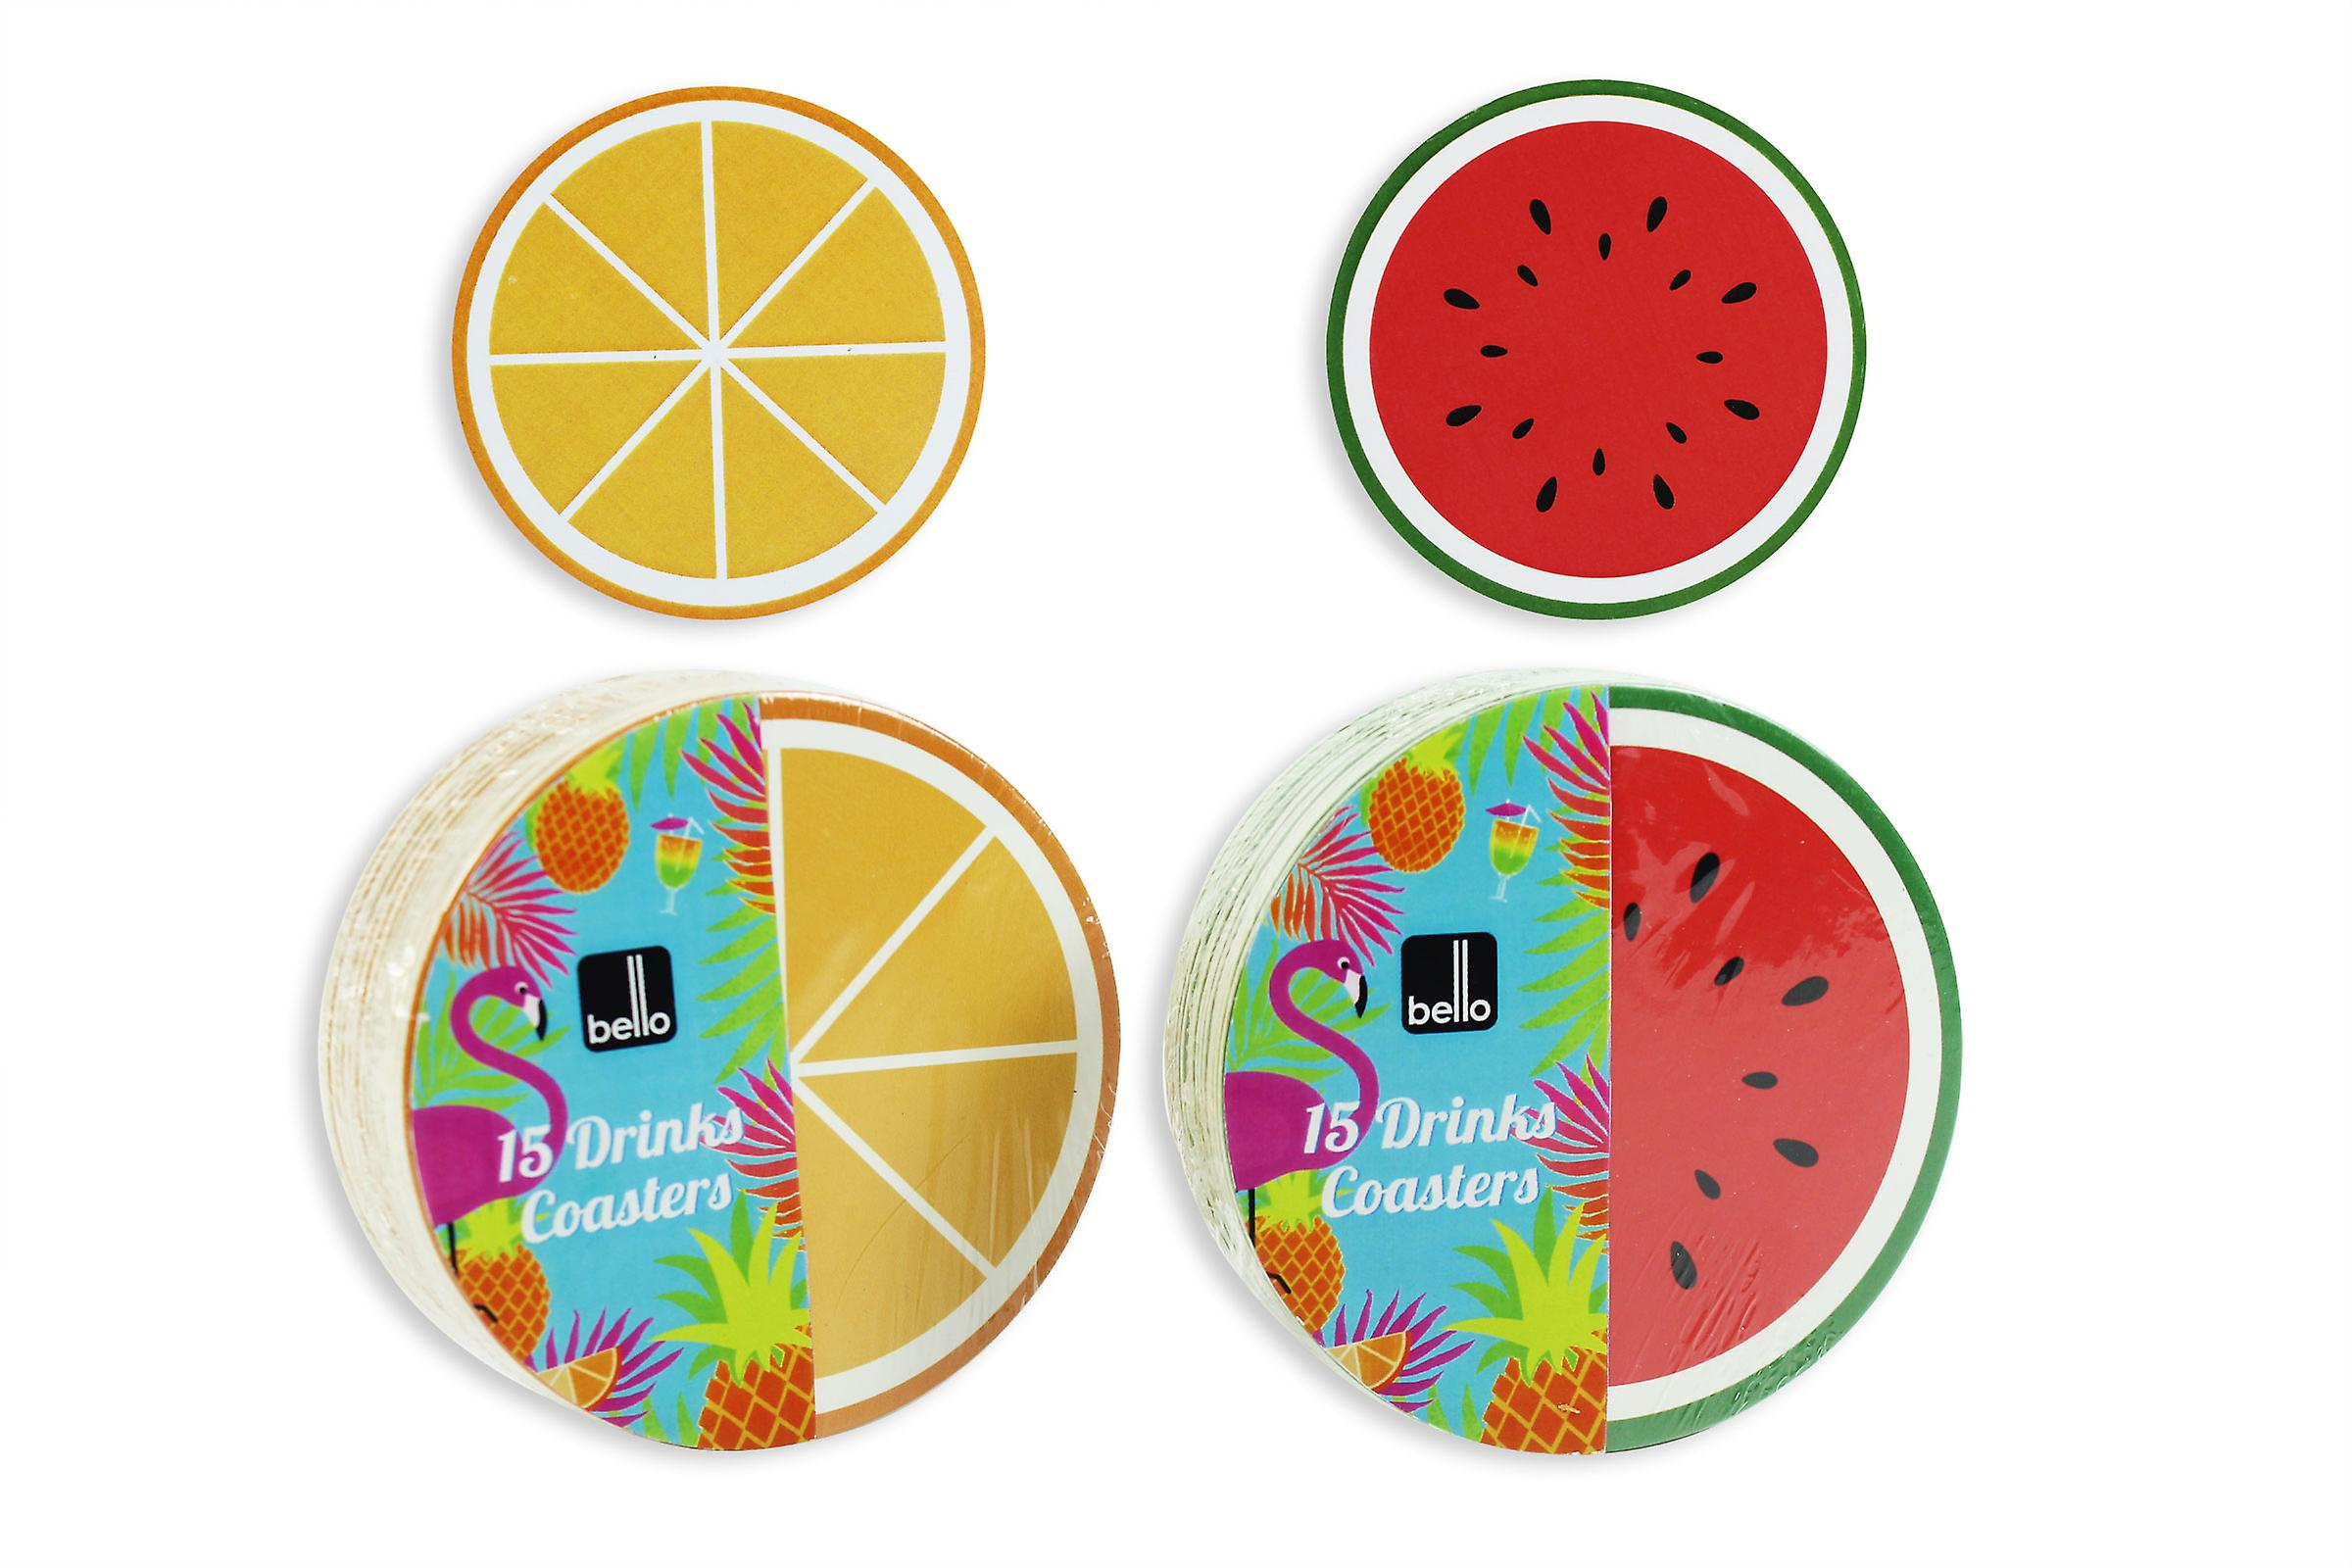 Drinks Coasters Pack of 30 Fruit Design Place Mat Tea Coffee Home Table Bello